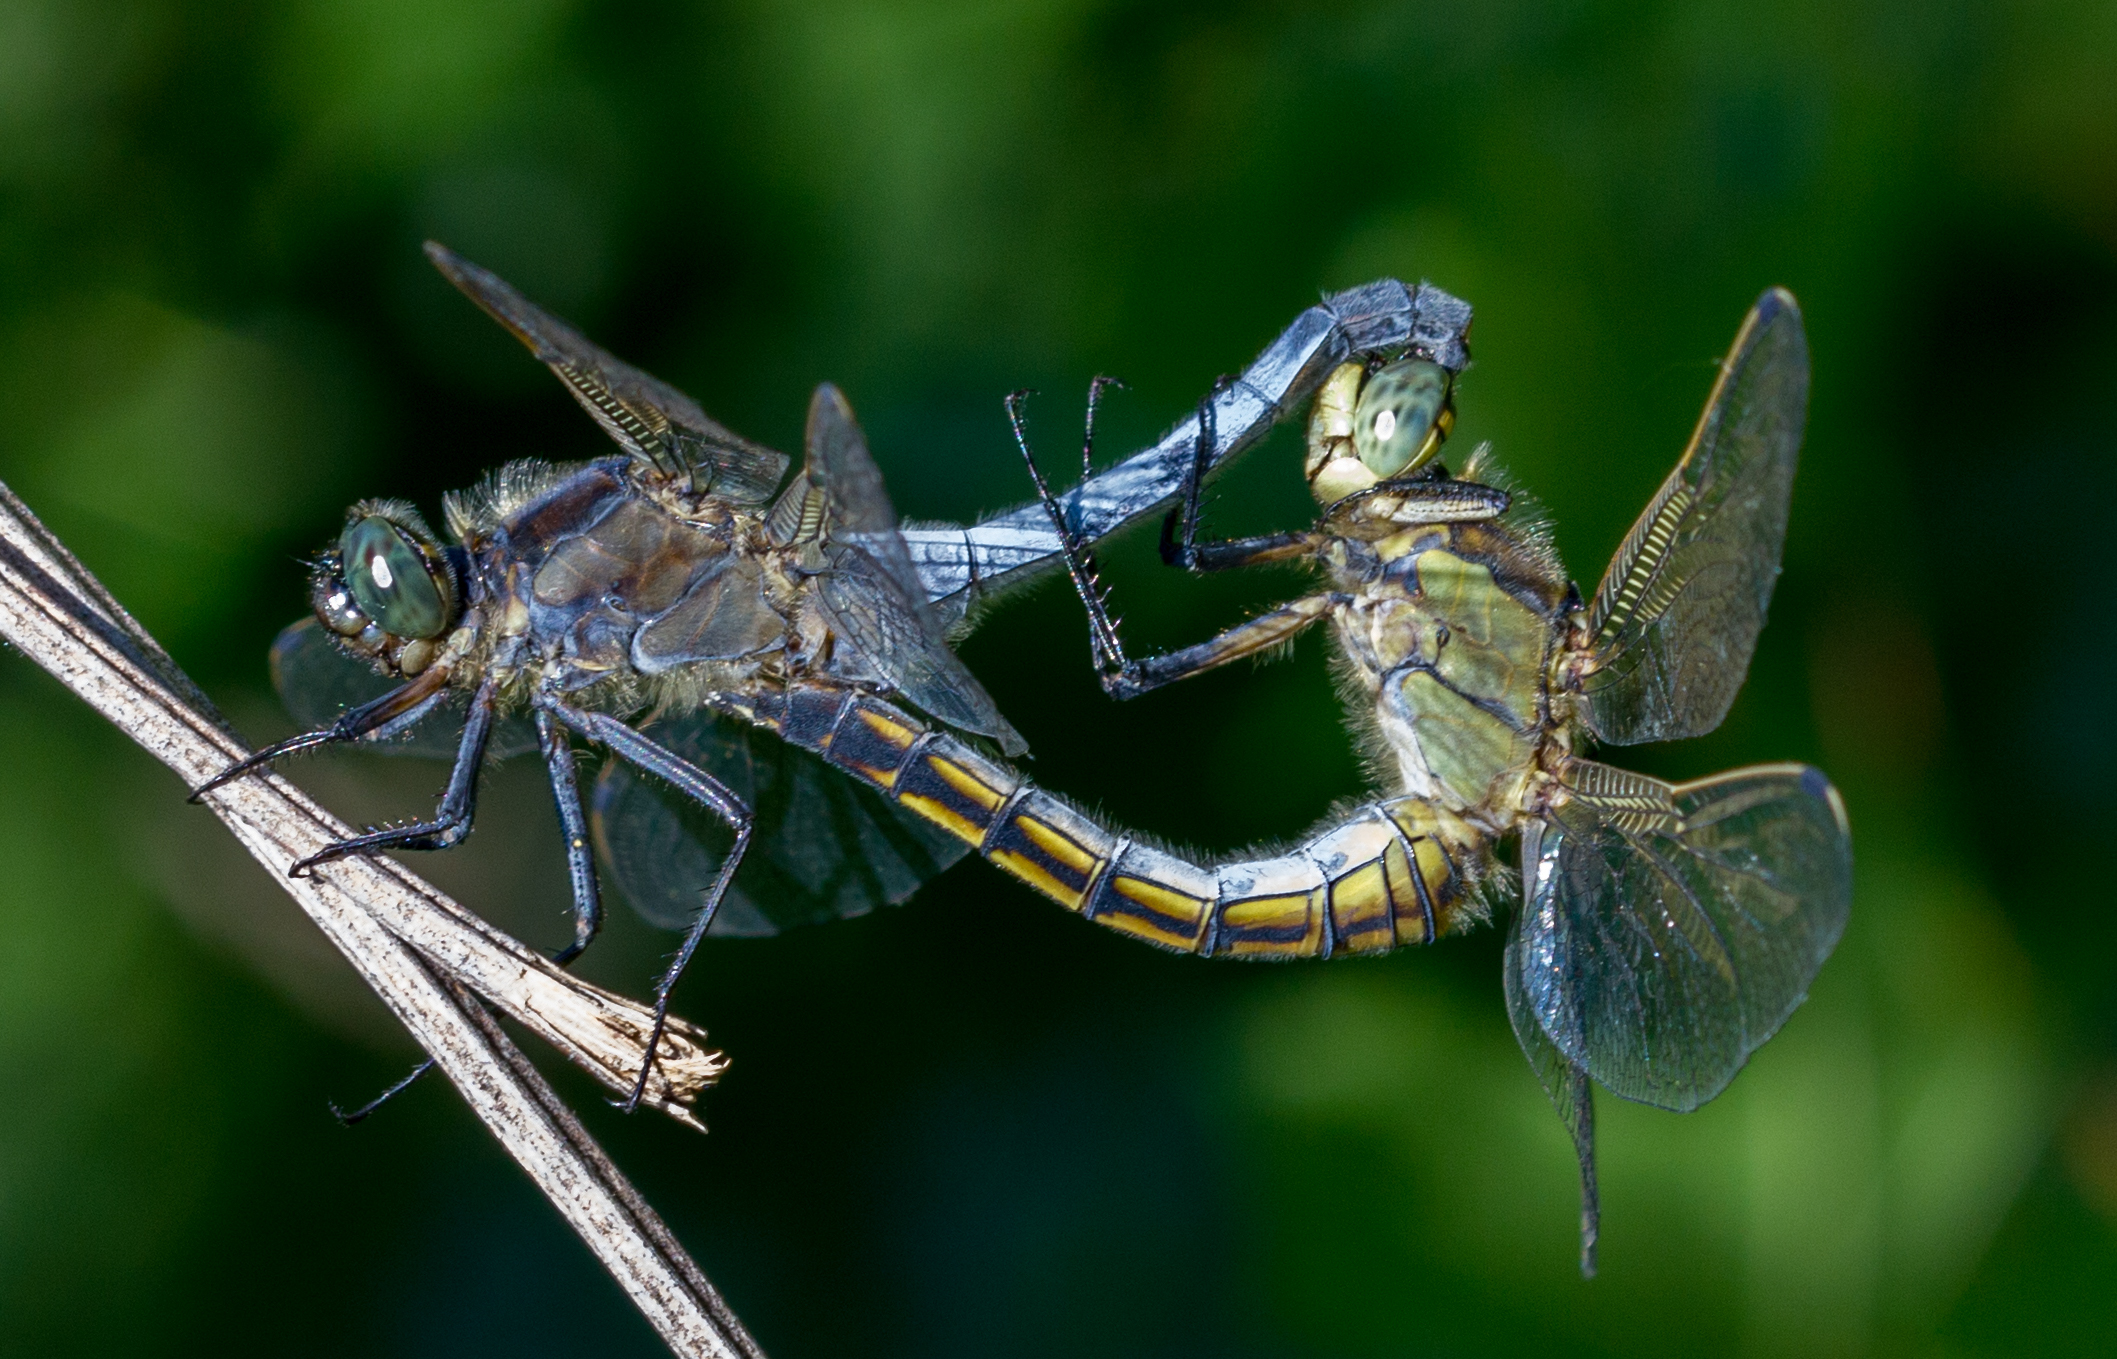 https://upload.wikimedia.org/wikipedia/commons/9/9d/Odonata_copulation.jpg